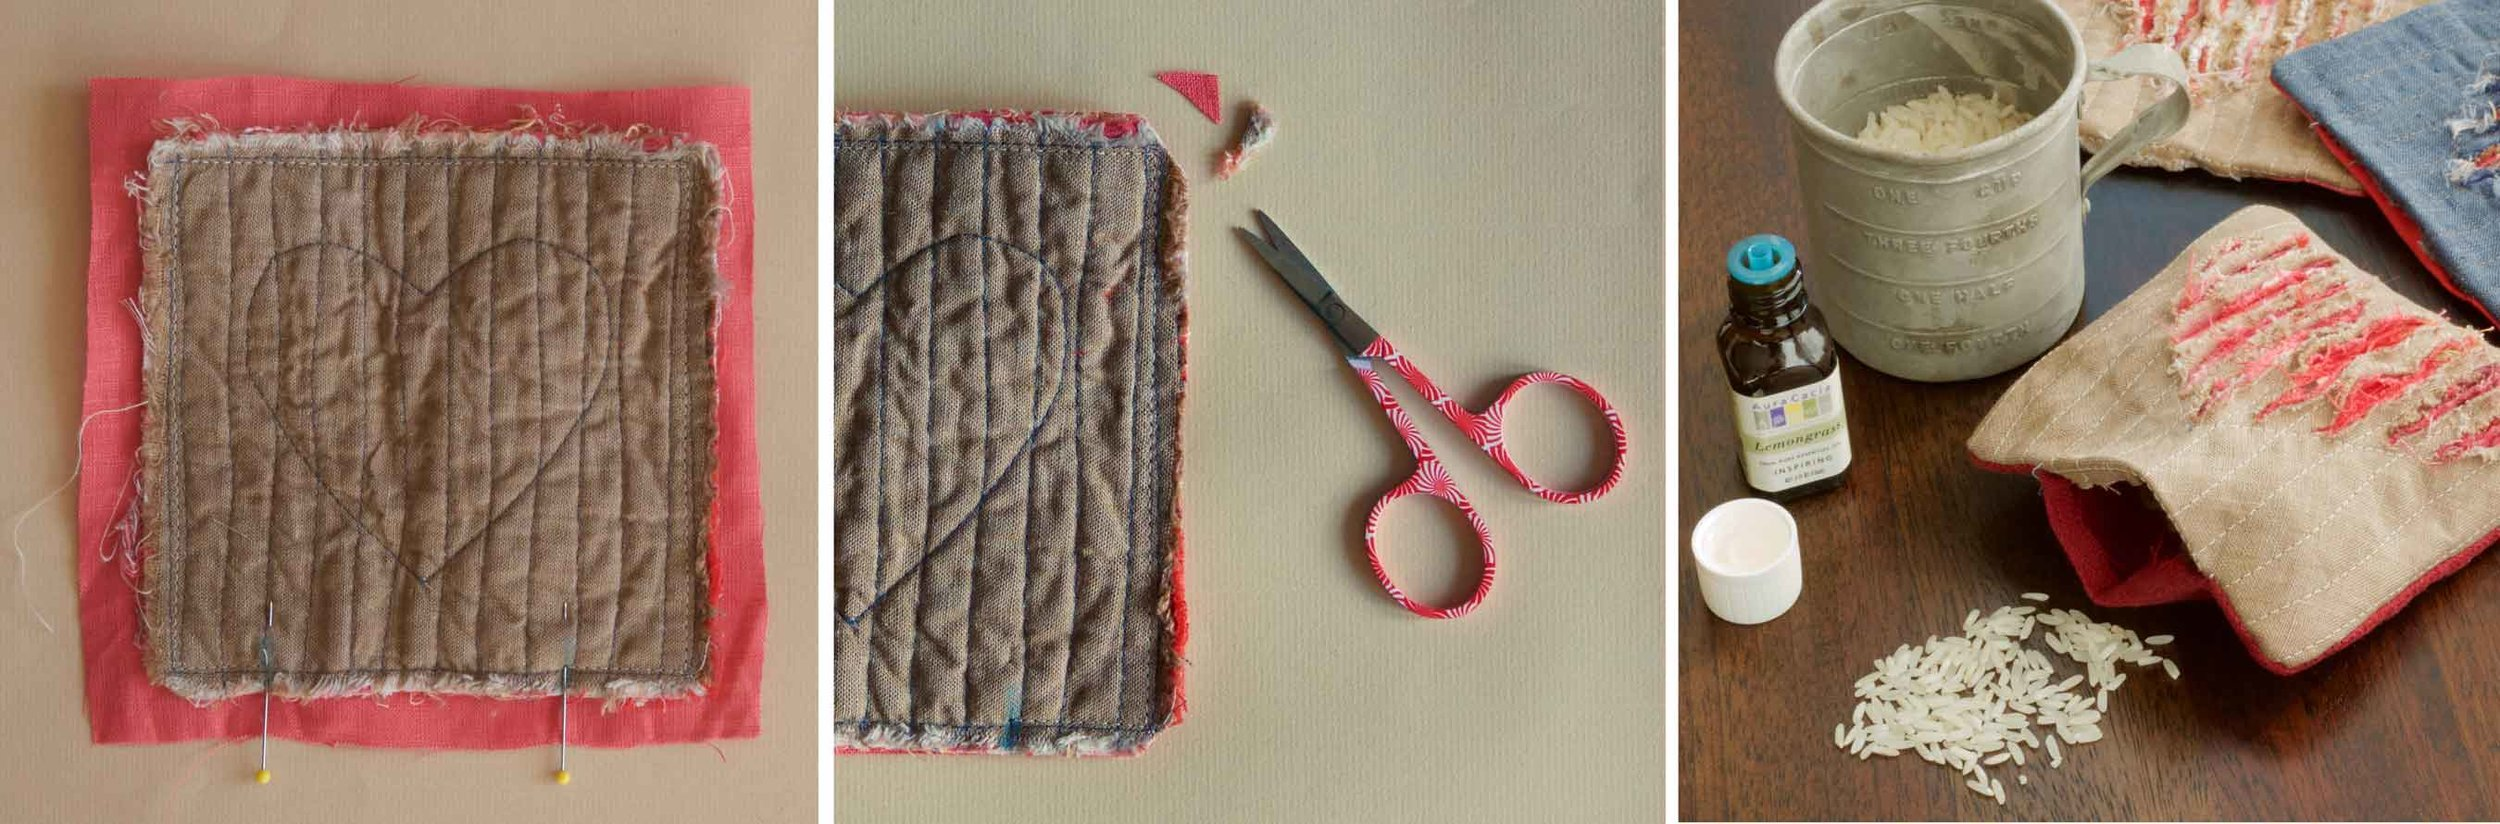 To complete the pillow, stitch the quilted fabric to a contrasting fabric, trim, snip corners and turn right side out. Scent a cup of rice with a favorite essential oil, stuff the pillow, and hand stitch it closed. Full instructions can be found at Thread & Whisk.